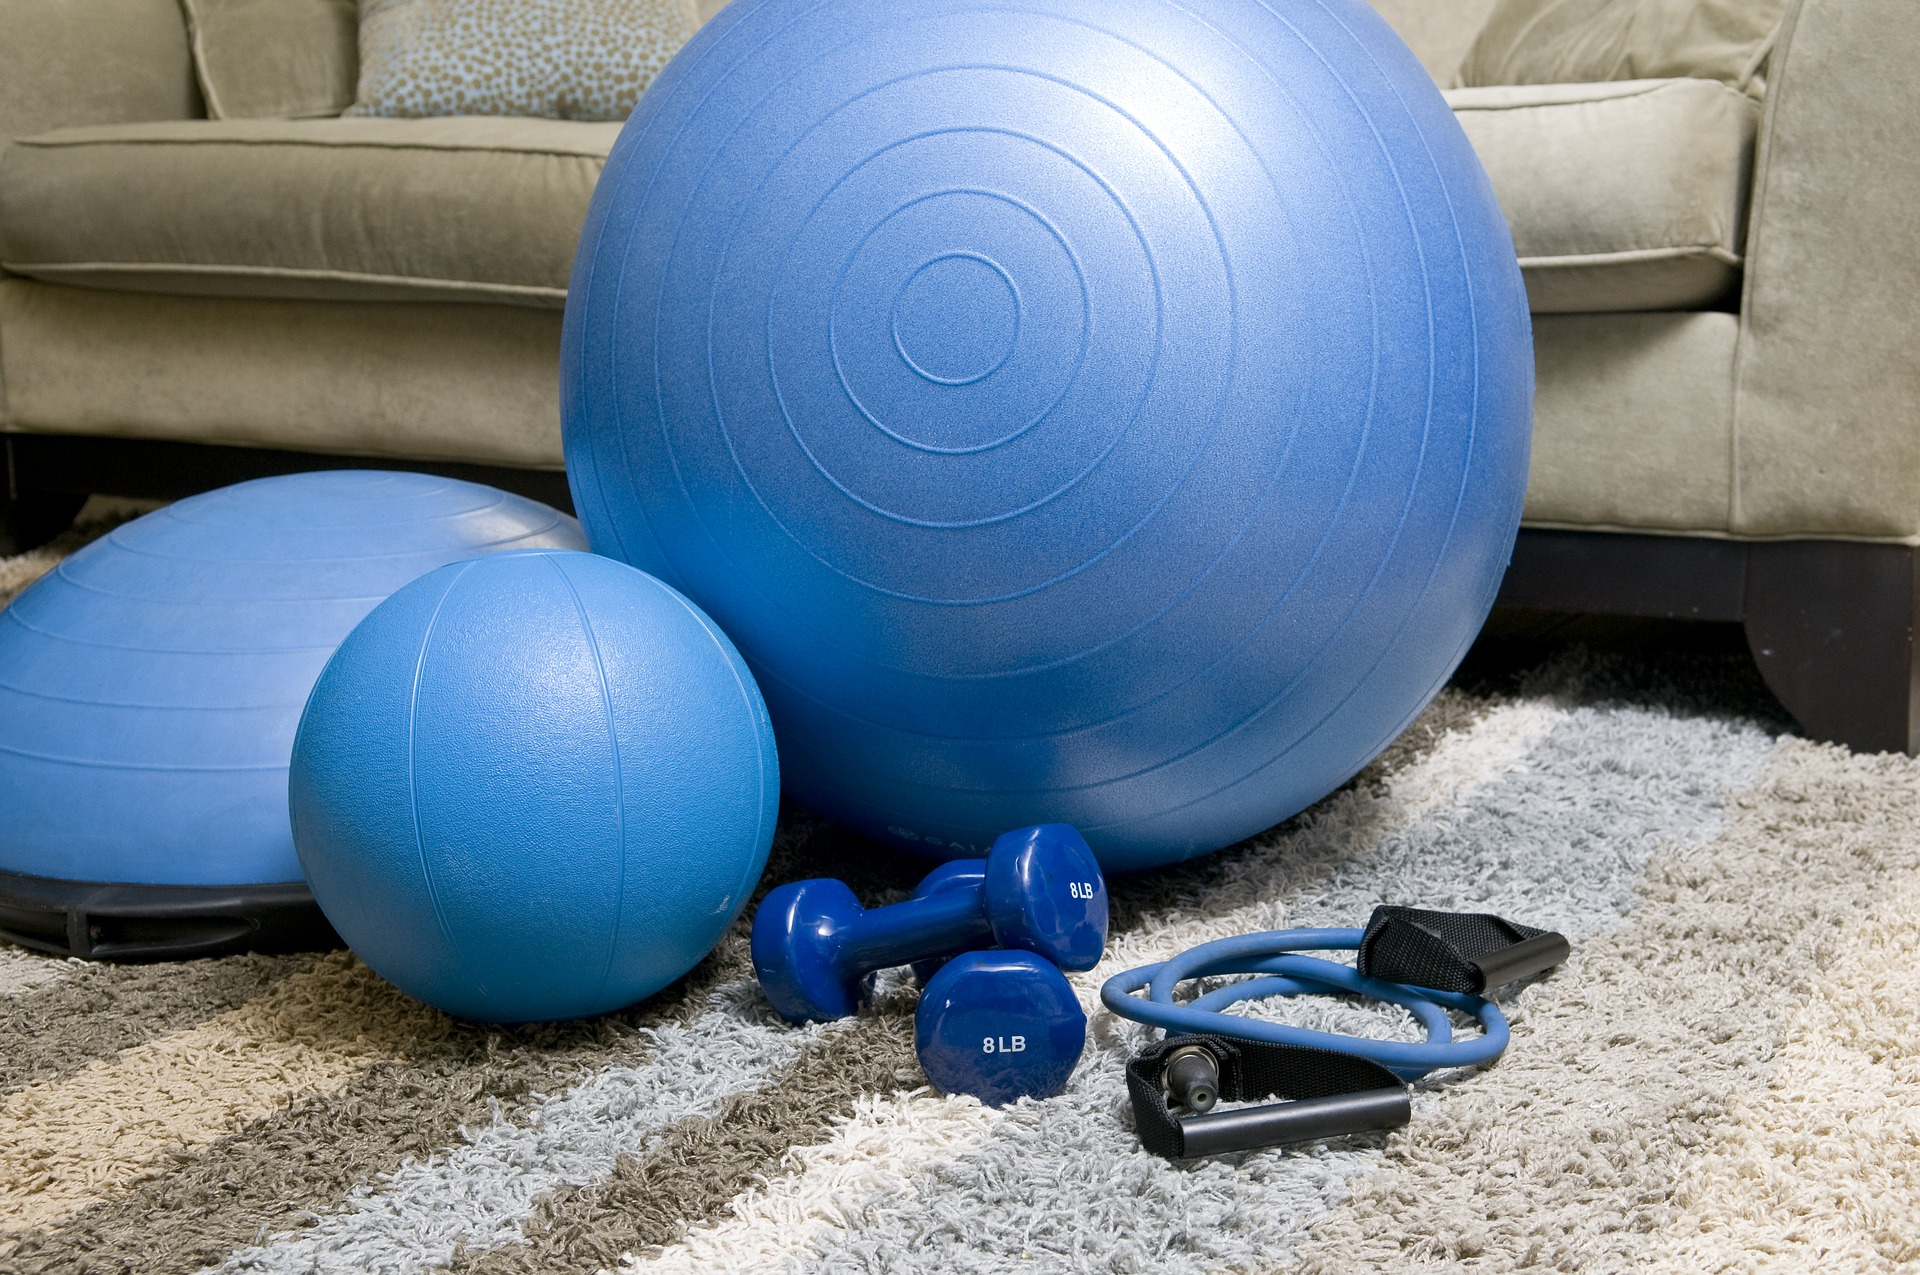 Physical Therapy Services - NY Physical Therapy & Wellness